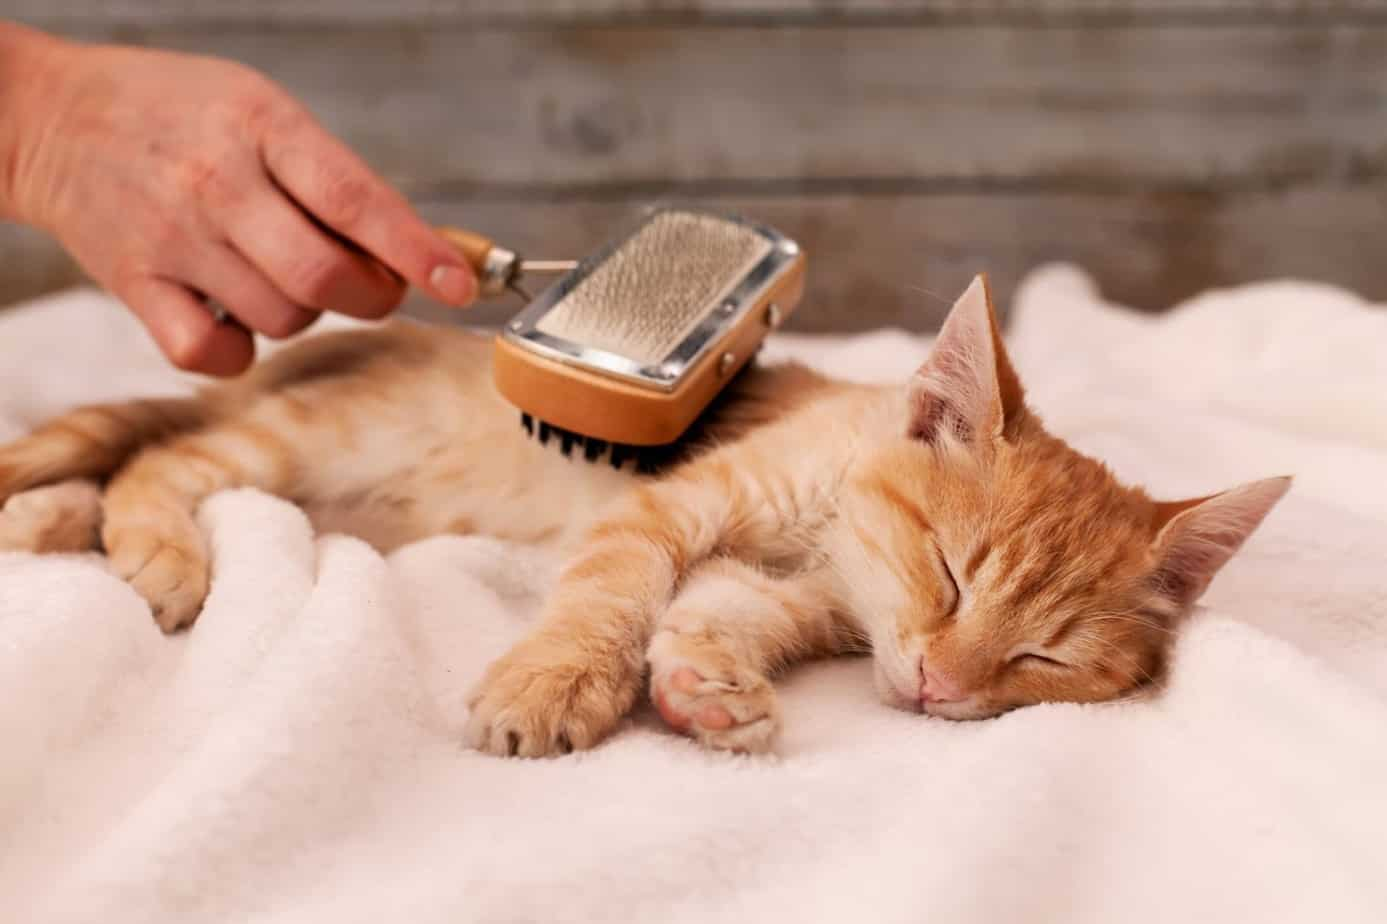 Brush your cat regularly to remove excess hair